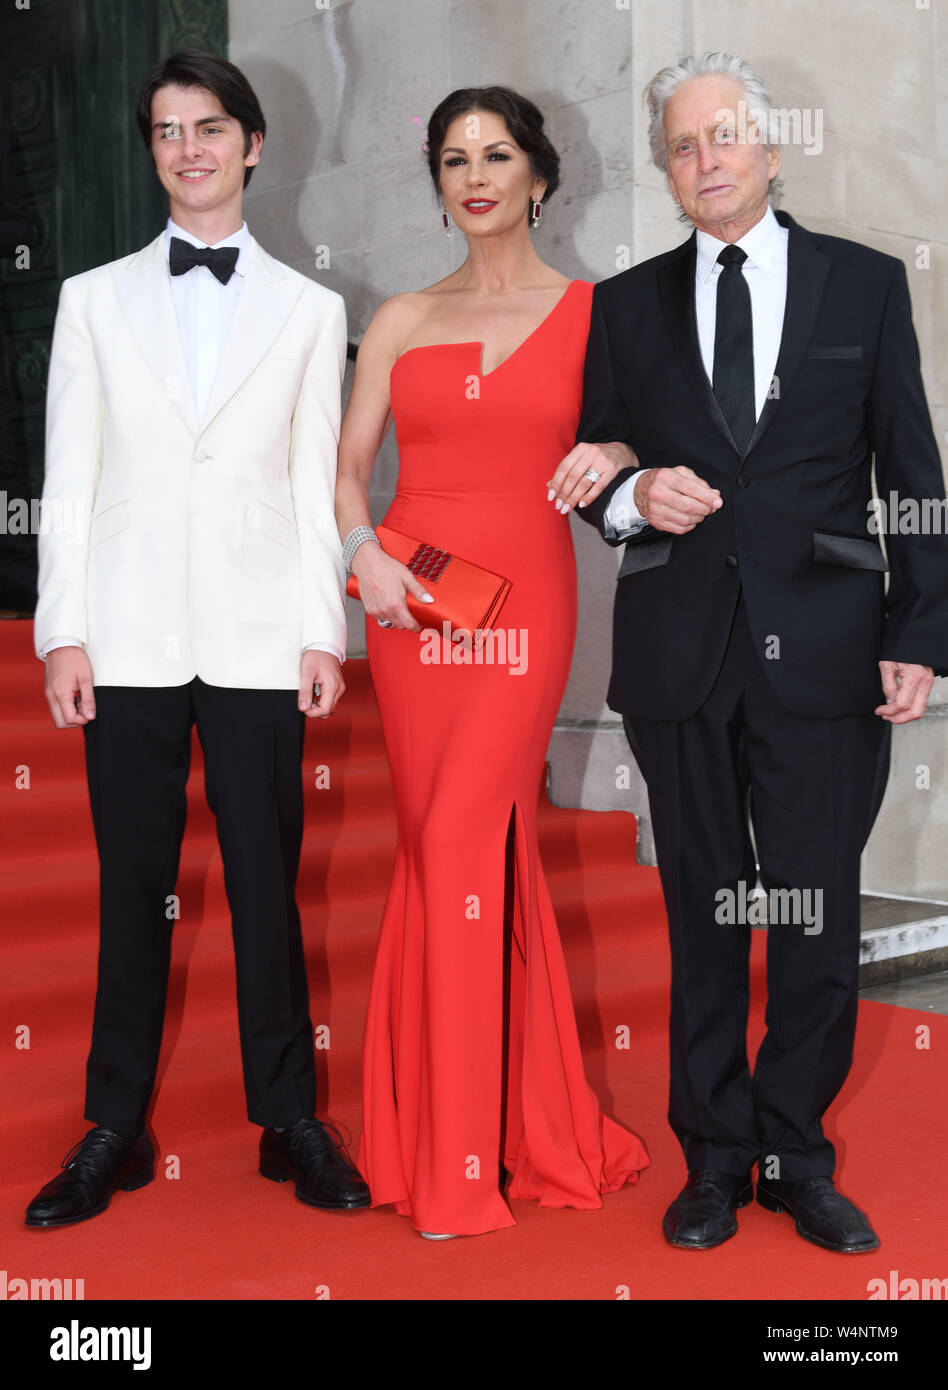 Swansea, Wales, UK. 24th July 2019 Pictured is Welsh actress, Catherine Zeta-Jones with husband Michael Douglas and their son Dylan arriving for a gala dinner at Swansea's Guildhall, to celebrate her  freedom of the city, which she received in a ceremony earlier in the day. Credit : Robert Melen/Alamy Live News. Stock Photo